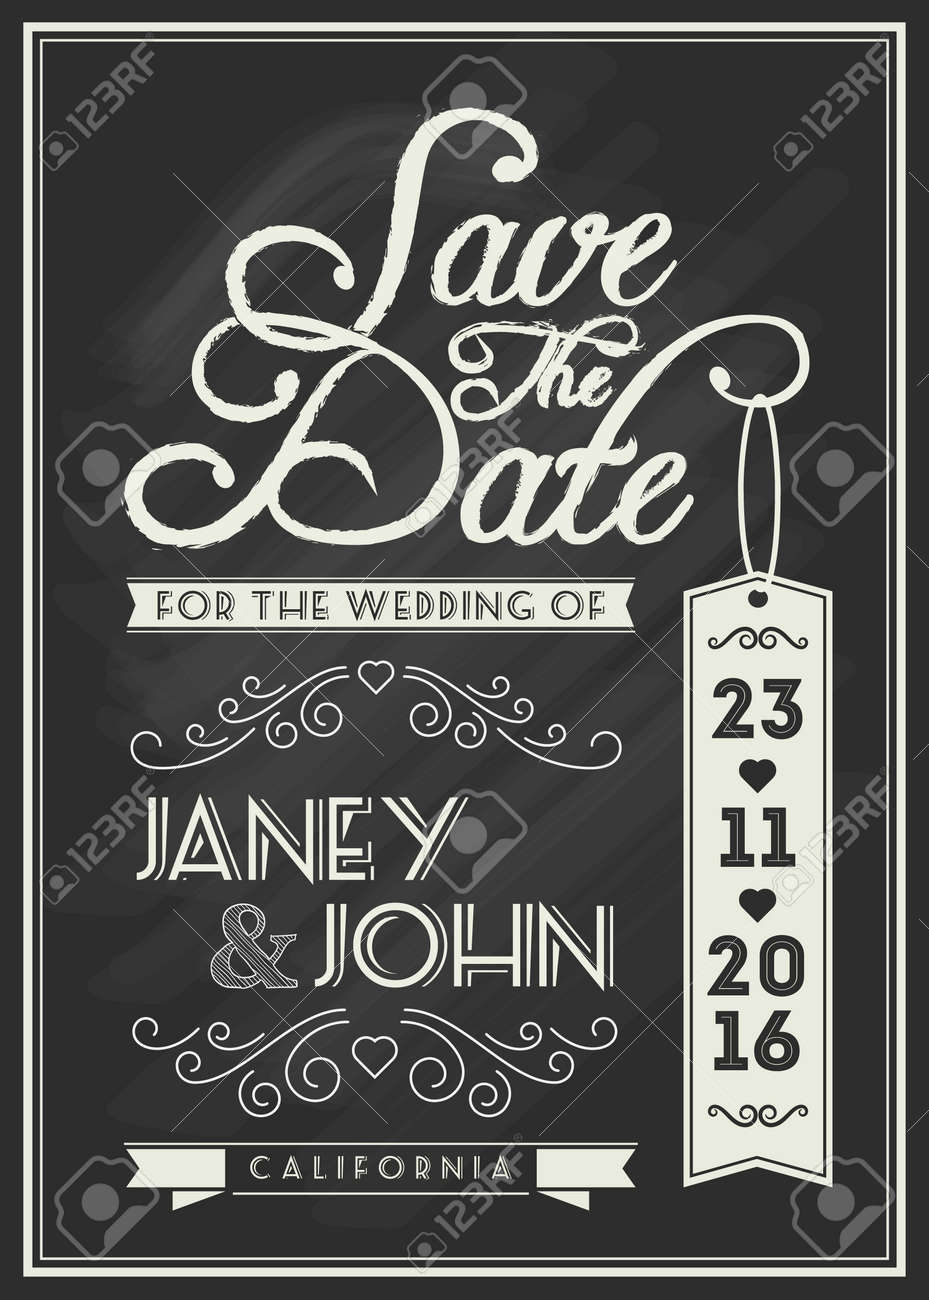 save the date card template design with typography and flourish line art on chalkboard theme for